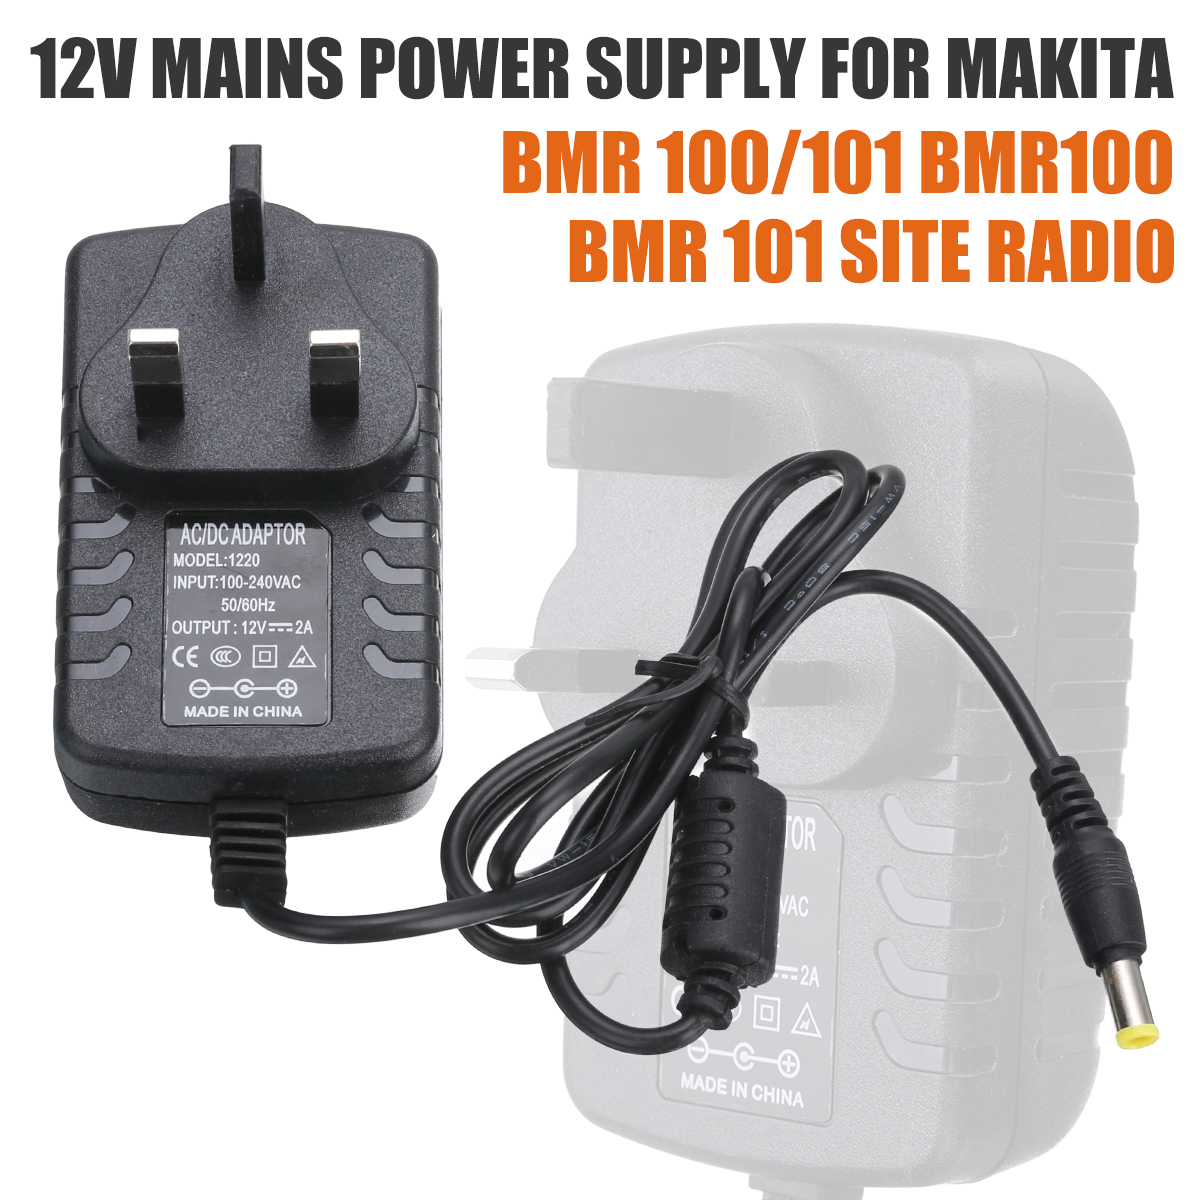 For <font><b>Makita</b></font> BMR 100/101 1pc <font><b>12V</b></font> 2A Power Supply Charger Dedicated Replacement AC <font><b>Adapters</b></font> Mayitr image